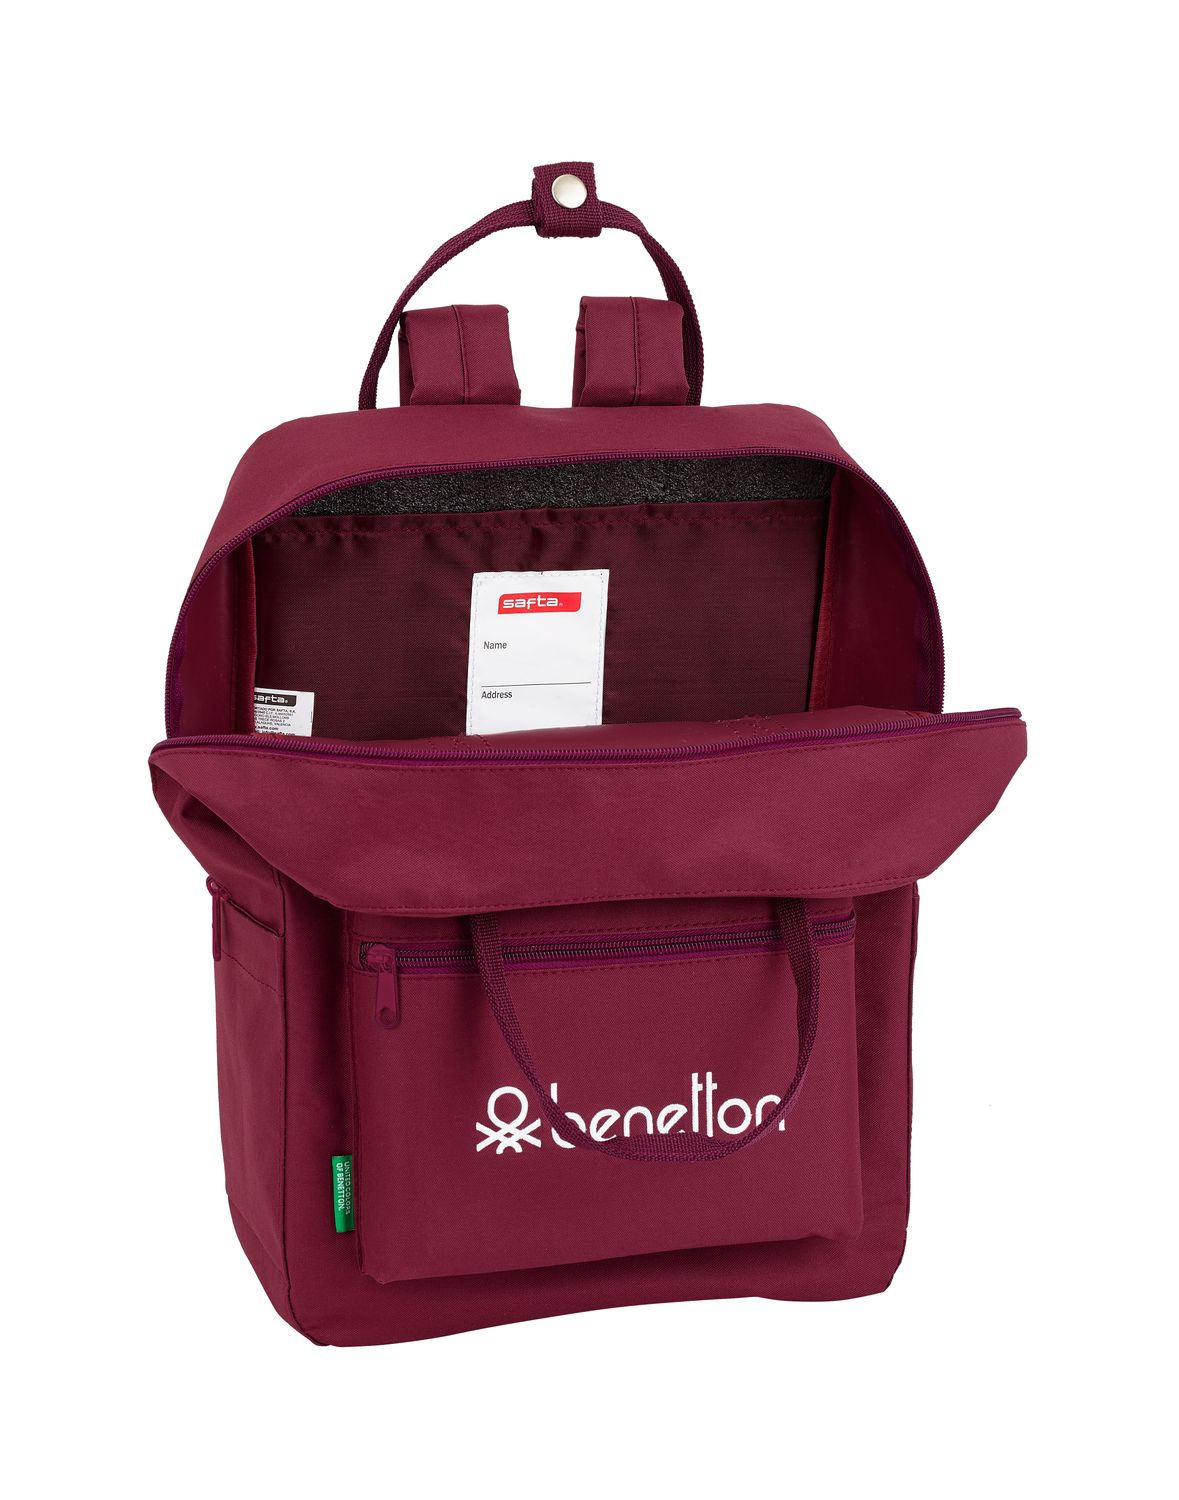 BENETTON BURGUNDY Backpack with handles 38 cm – image 2